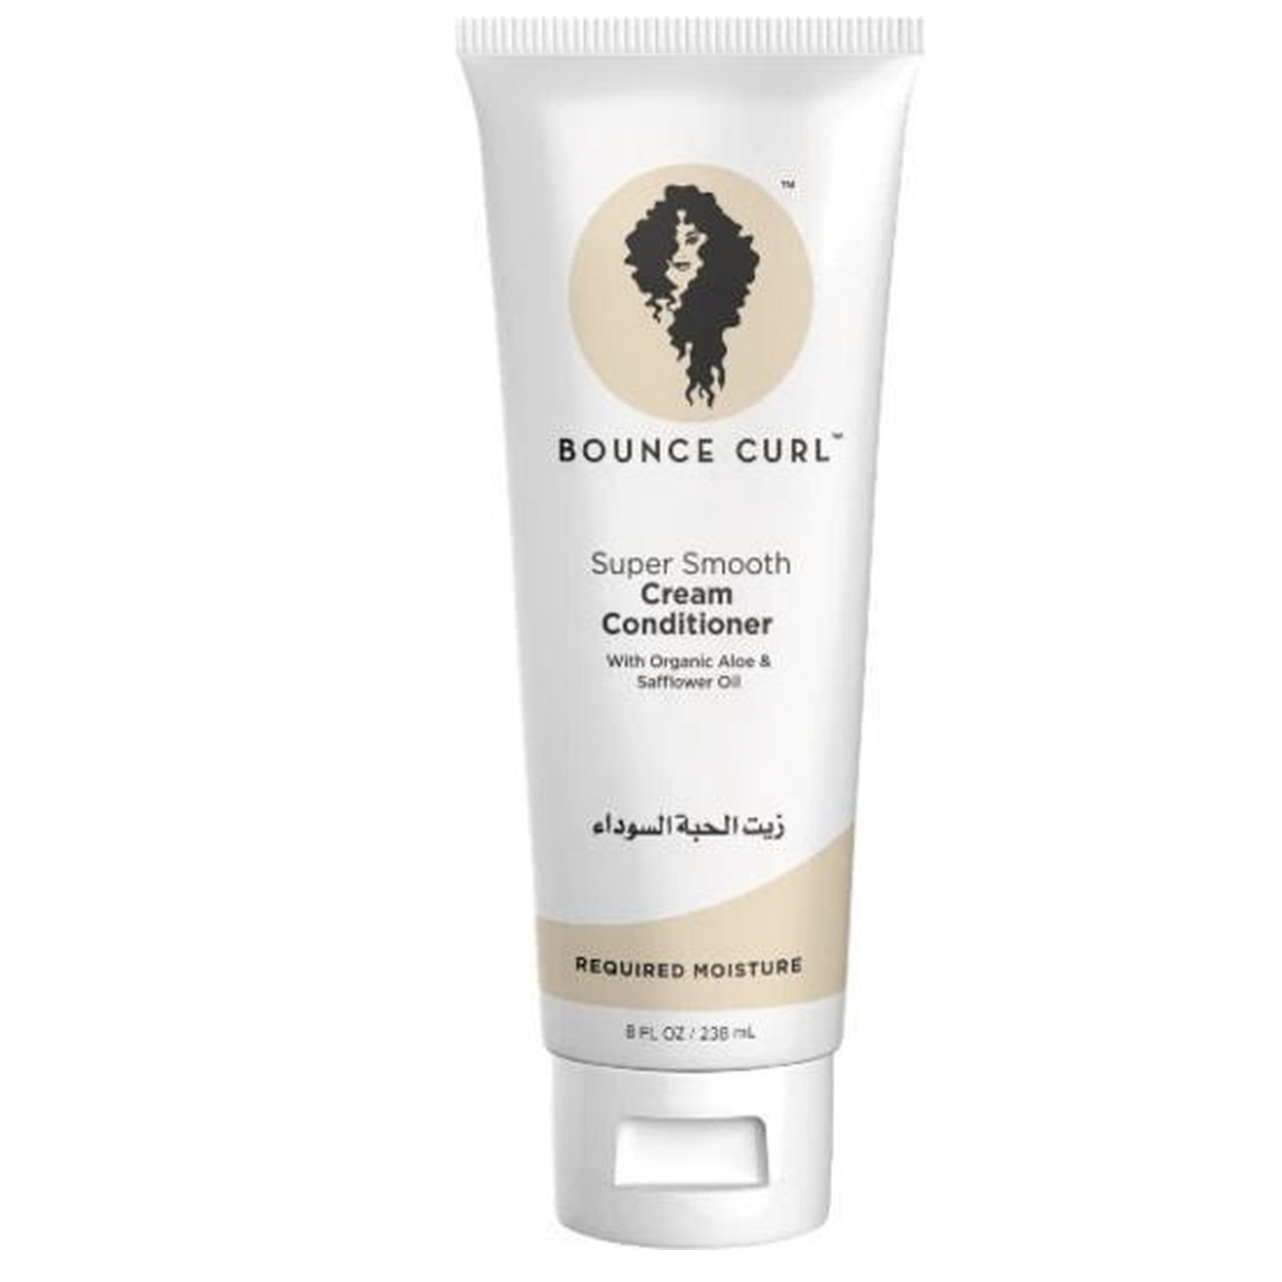 Bounce Curl conditioner